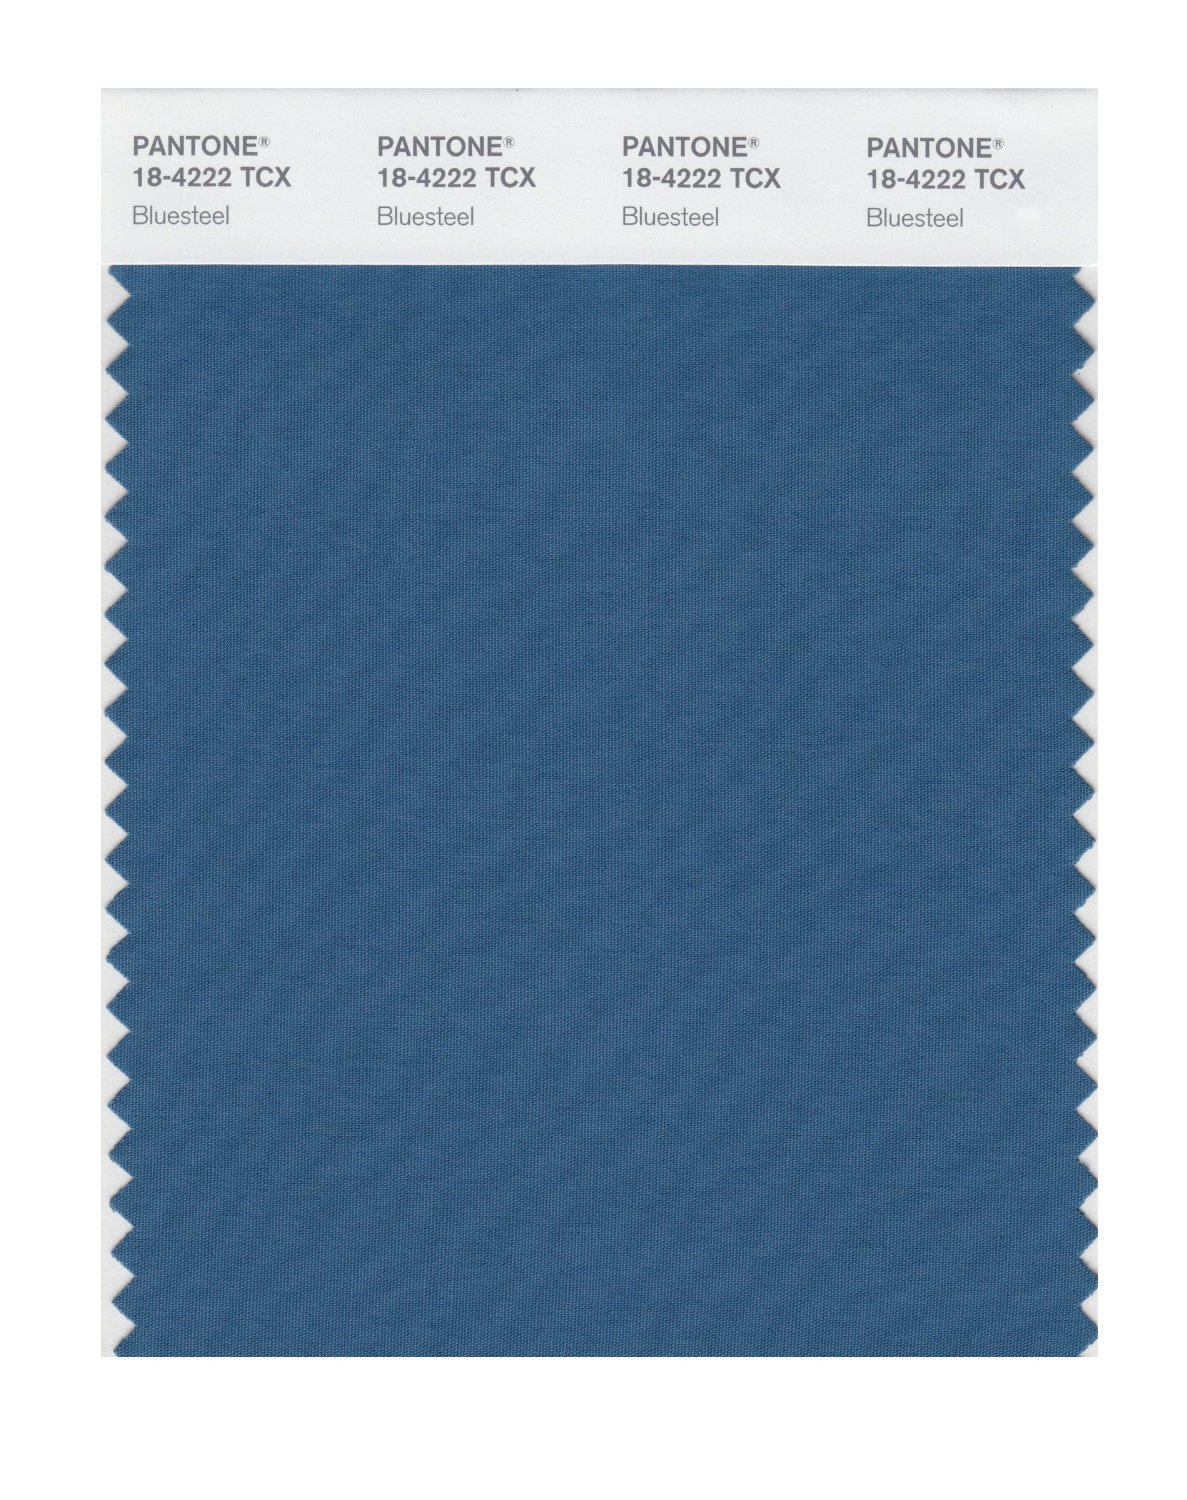 Pantone Smart Swatch 18-4222 Bluesteel